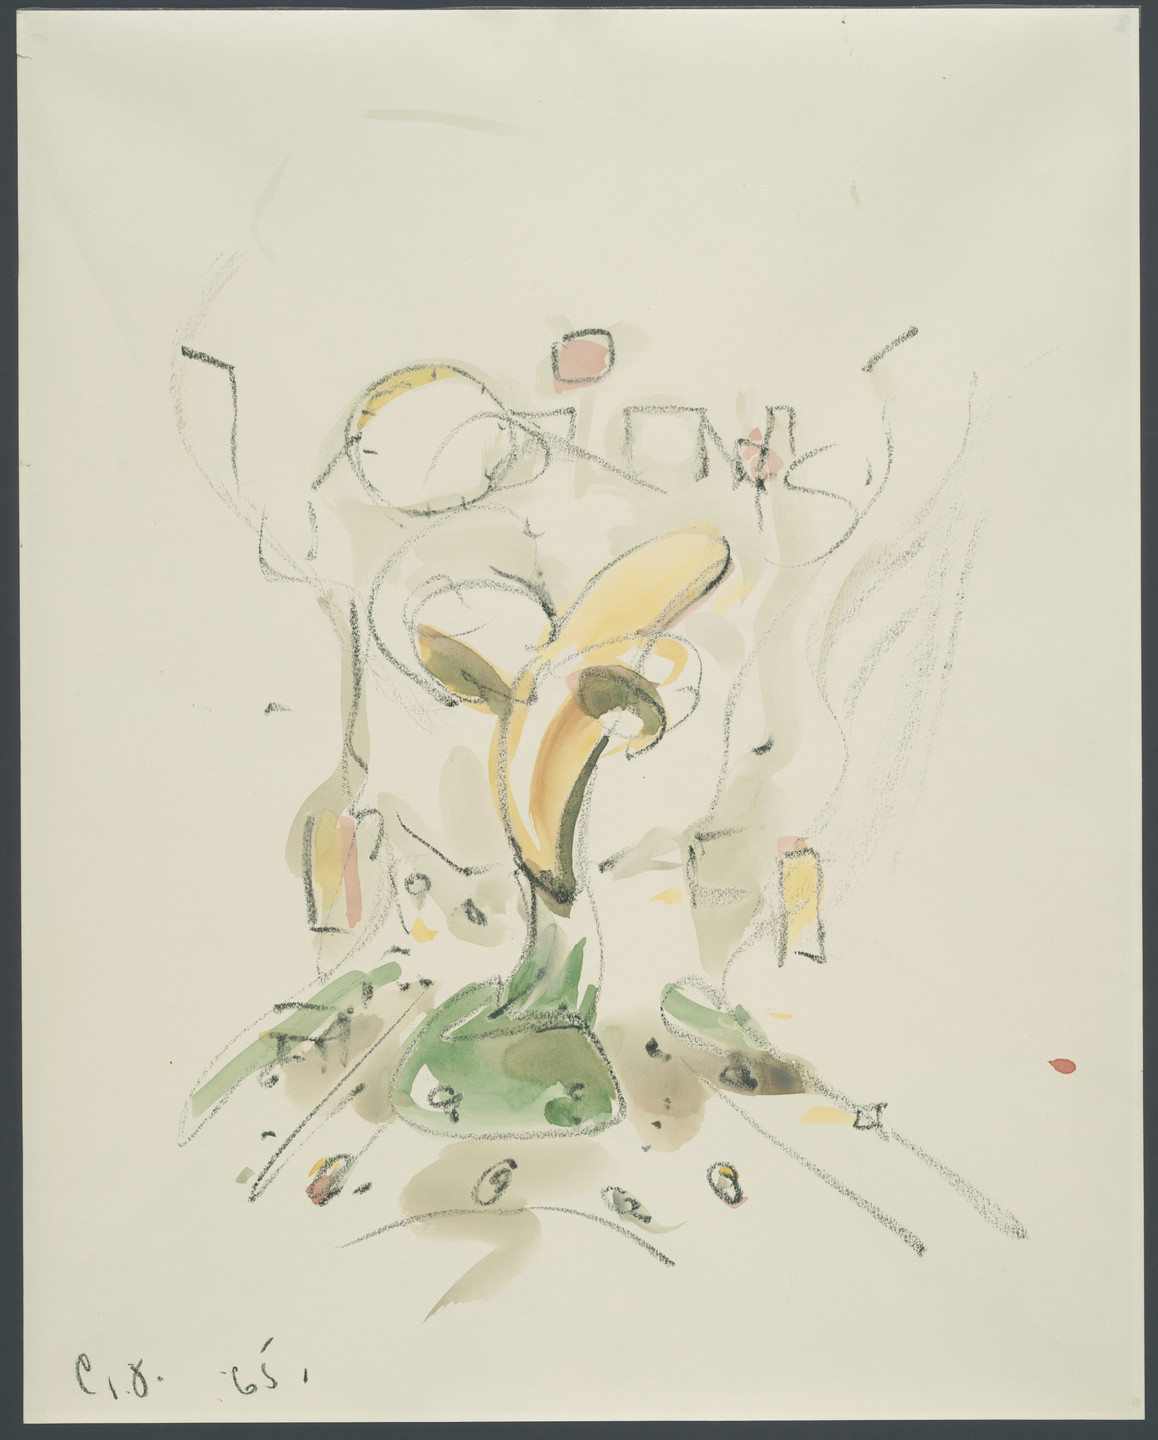 Claes Oldenburg. Proposed Colossal Monument for 42nd Street: Banana. 1965